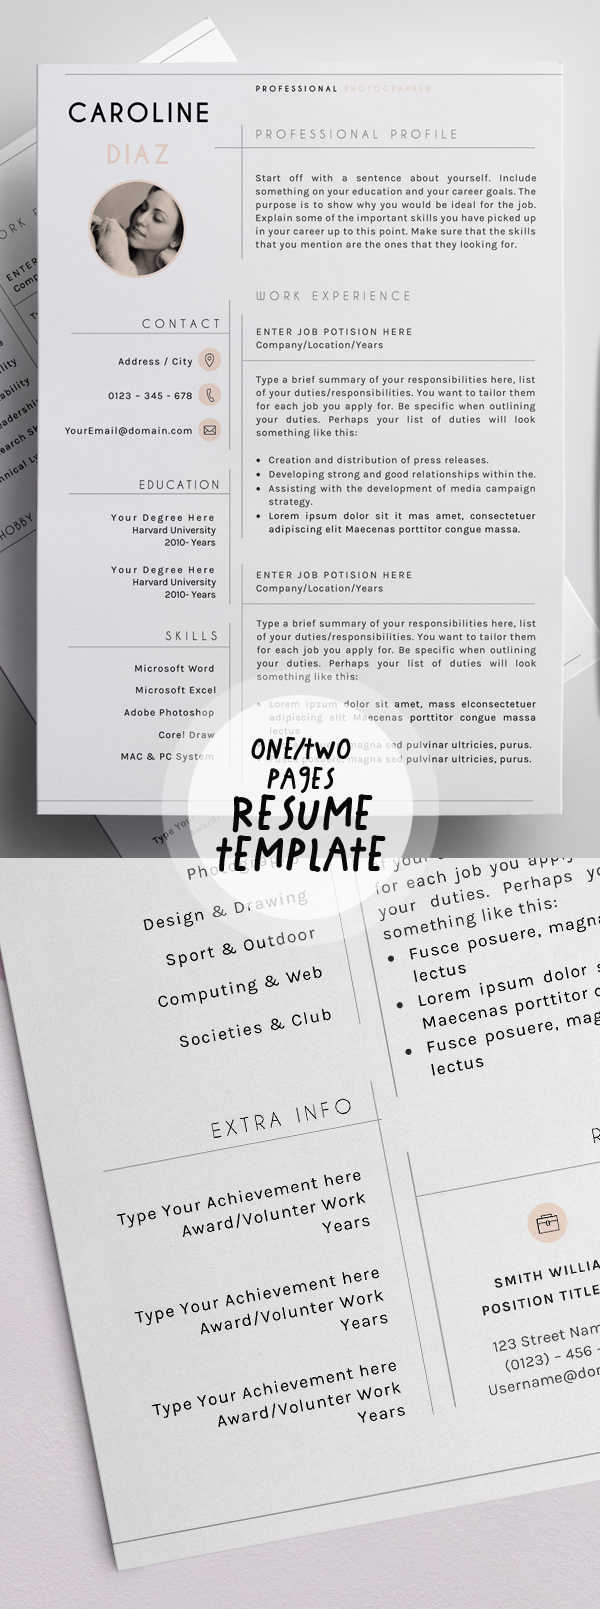 50 Best Resume Templates For 2018 - 43